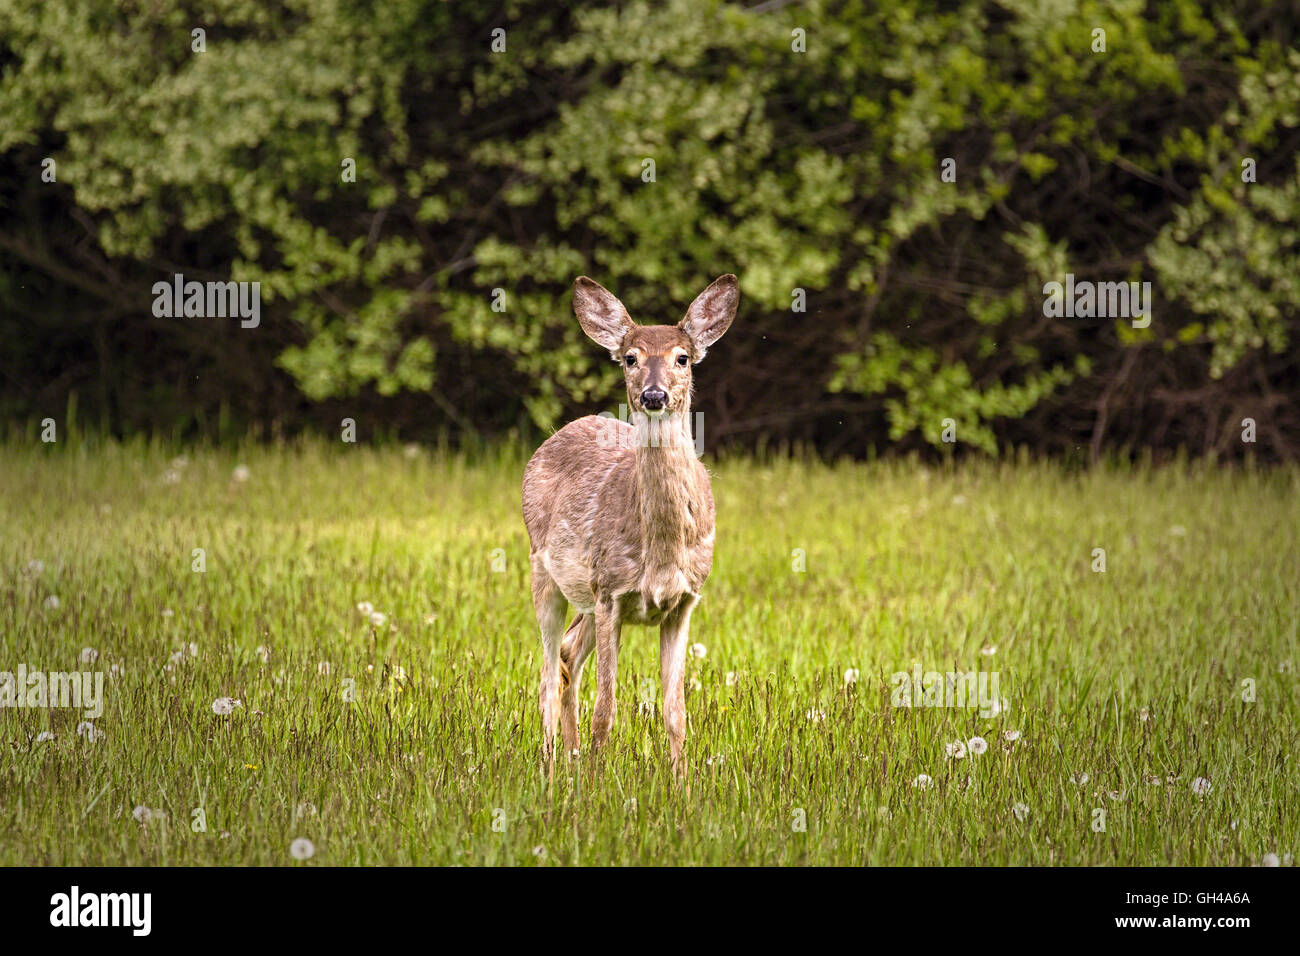 One White Tailed Deer Alert on the Spring Meadow, Hunterdon County, New Jersey - Stock Image